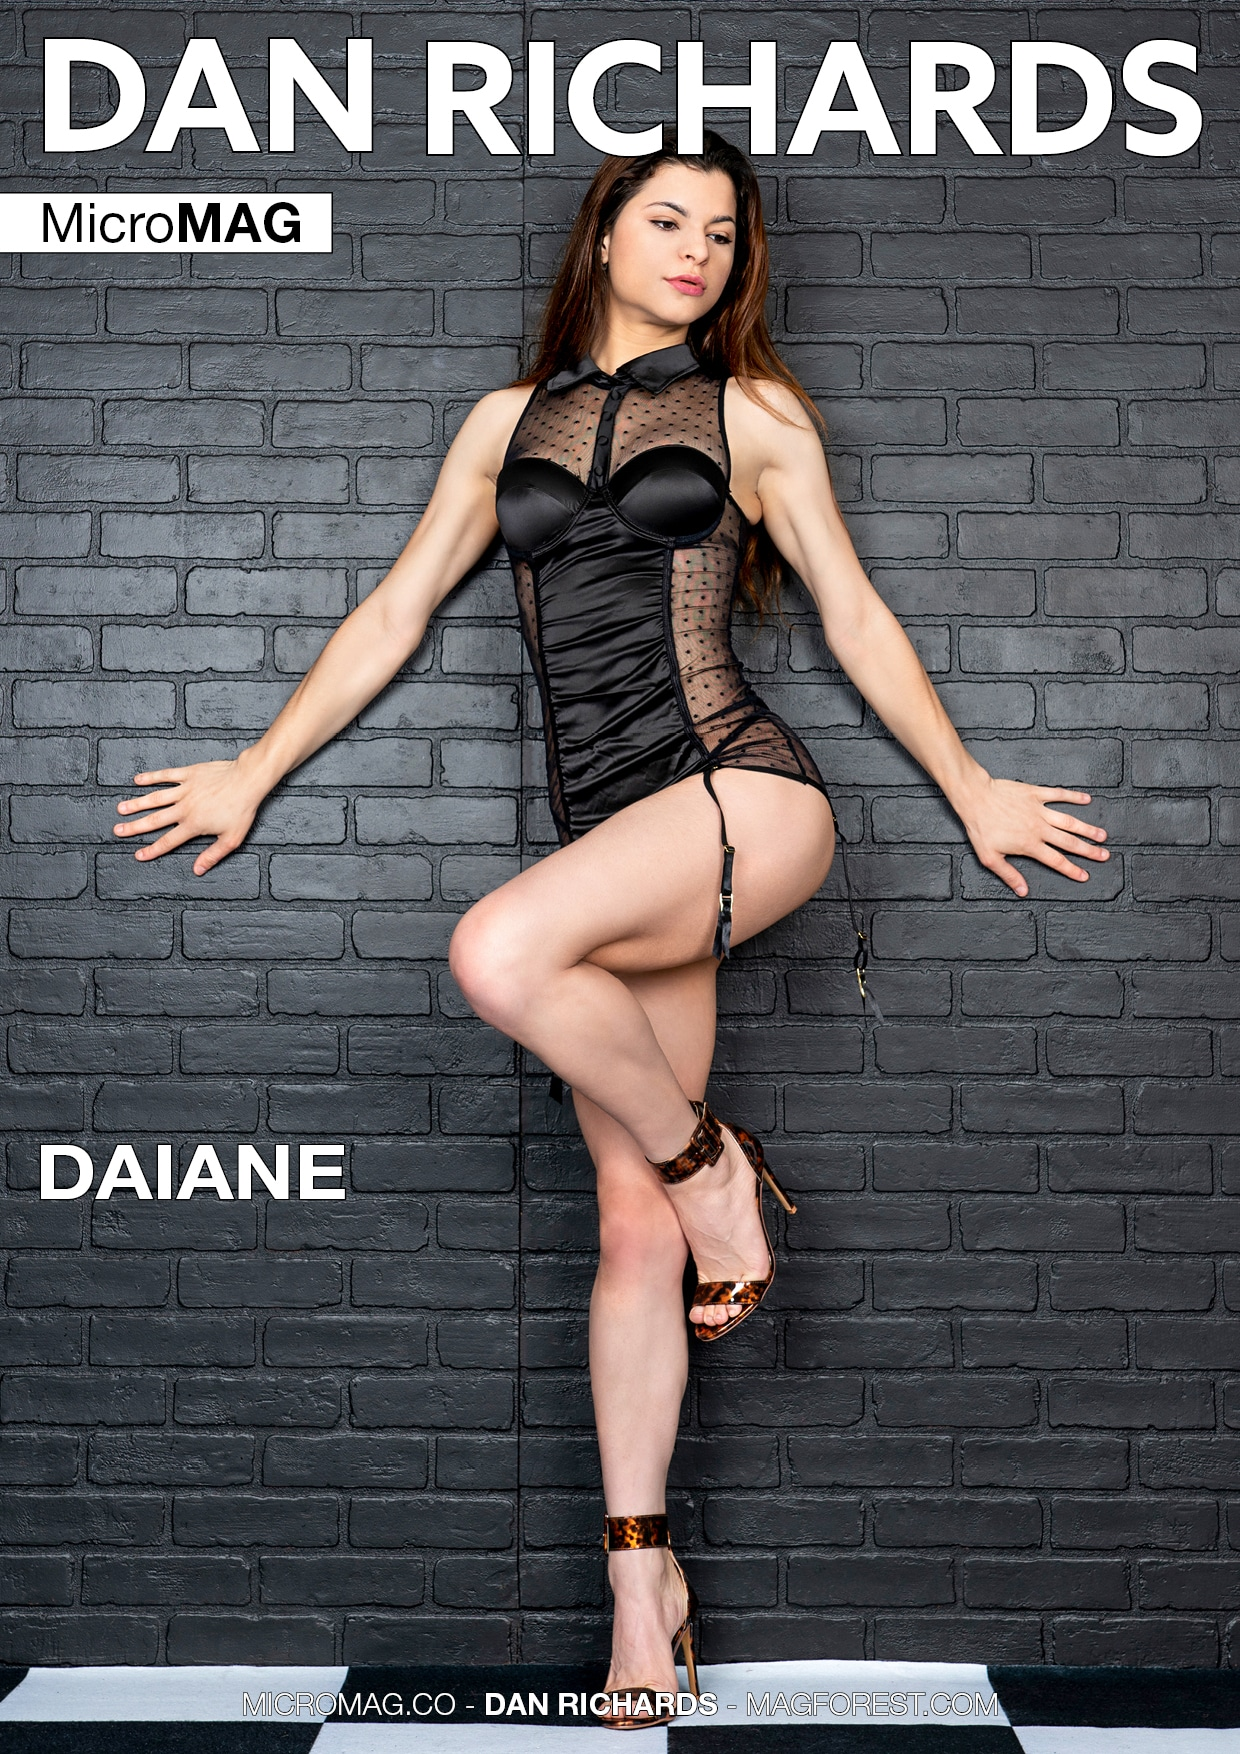 Dan Richards MicroMAG - Daiane - Issue 2 1